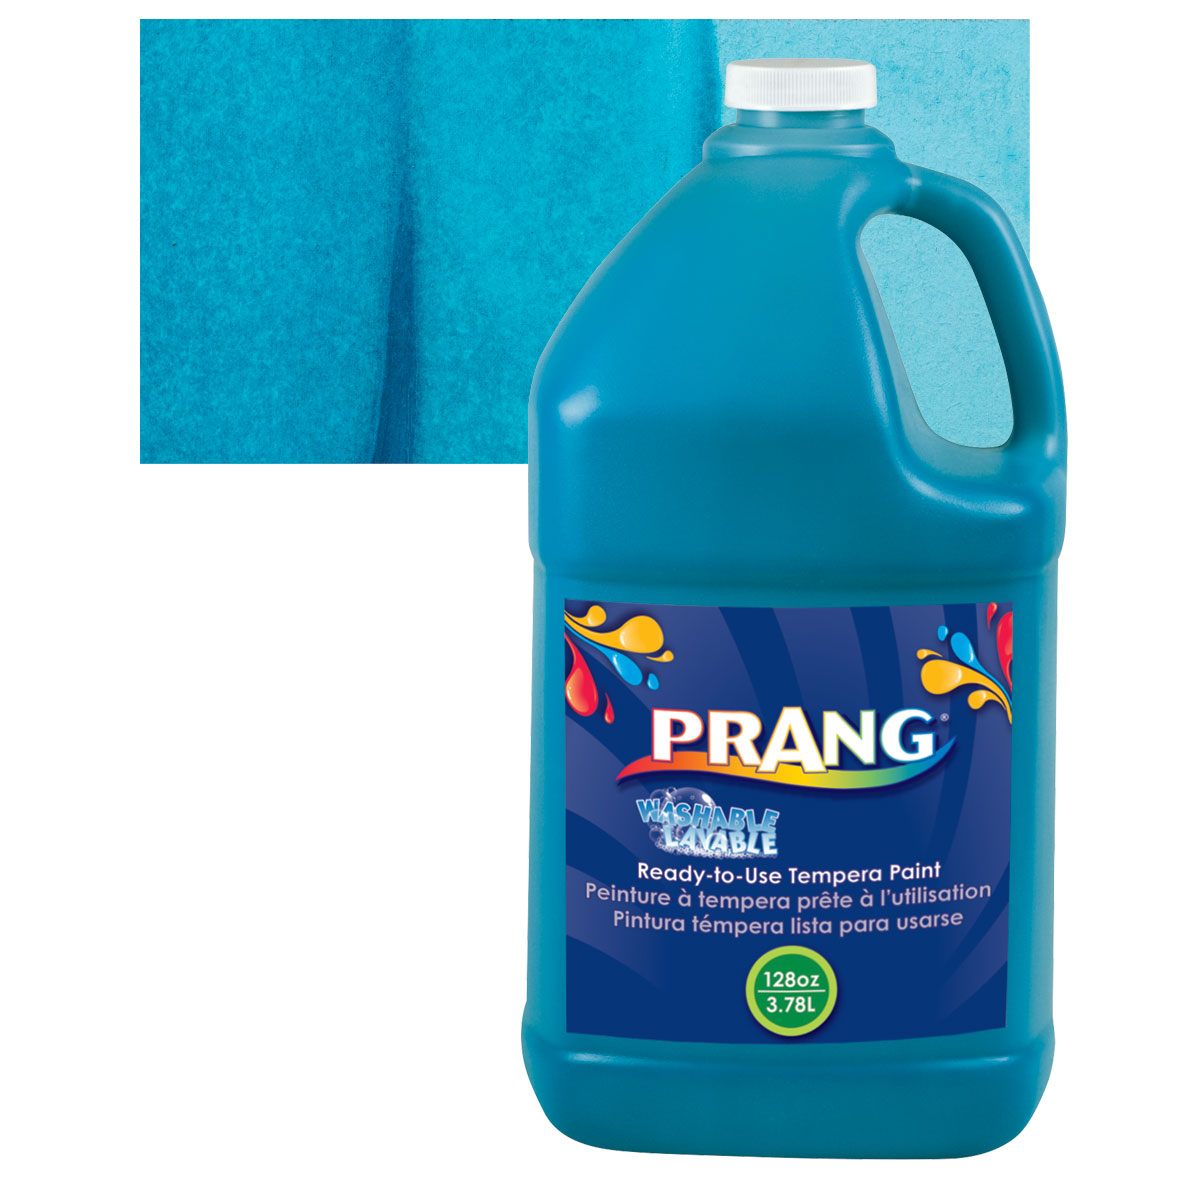 Prang Ready-To-Use Washable Tempera Paint - Turquoise, Gallon